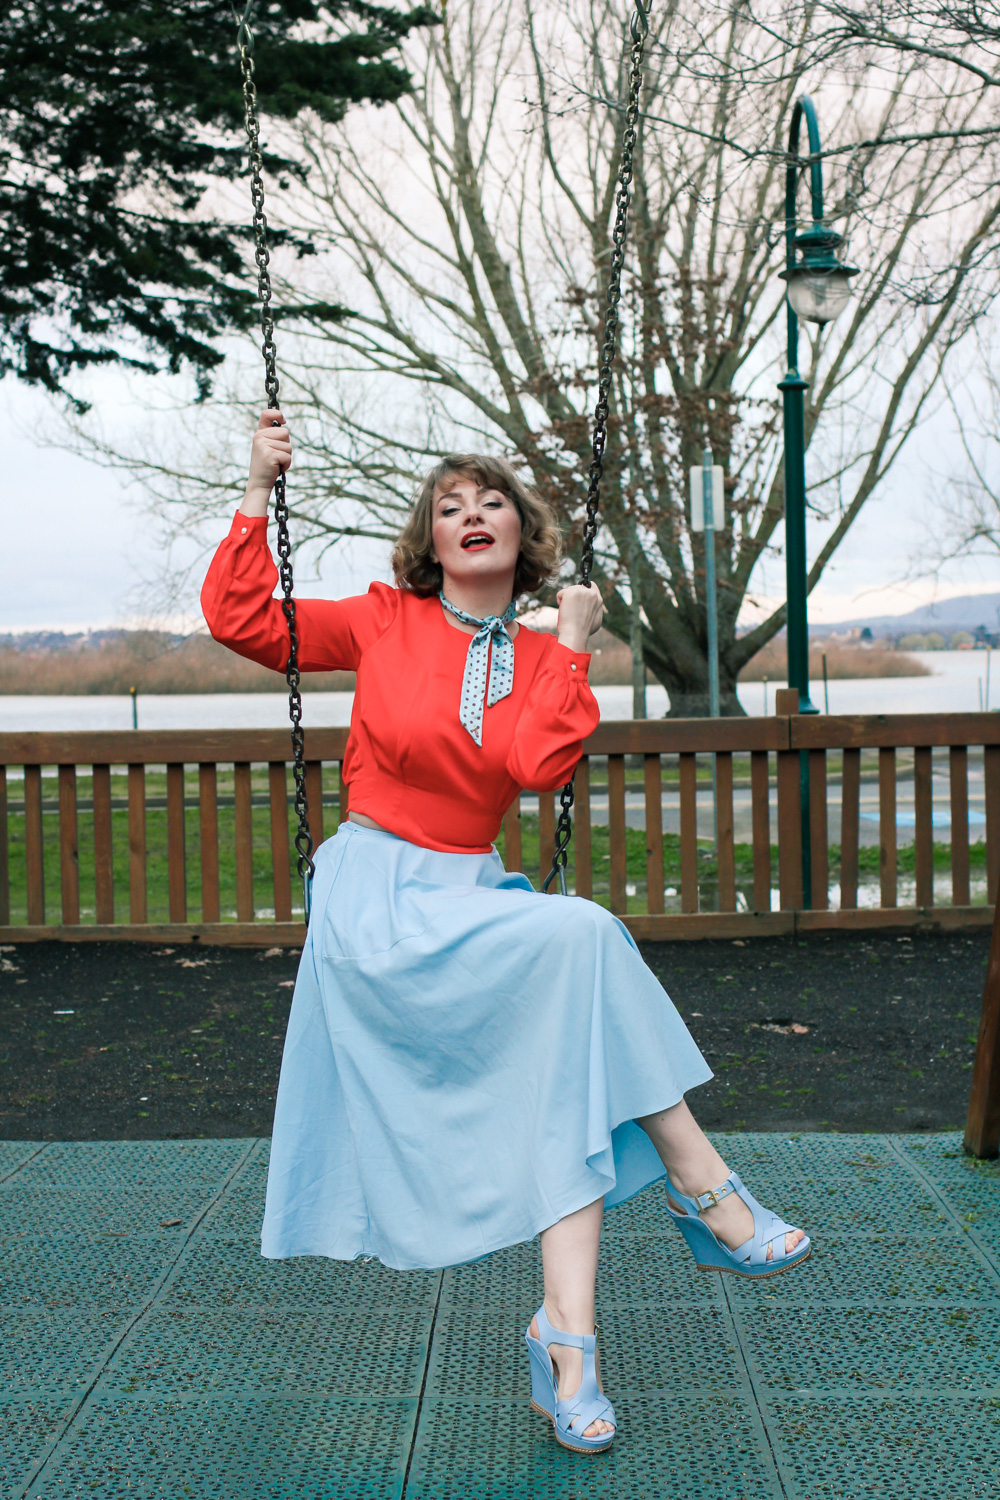 @findingfemme wears ice blue and orange red Chicwish outfit